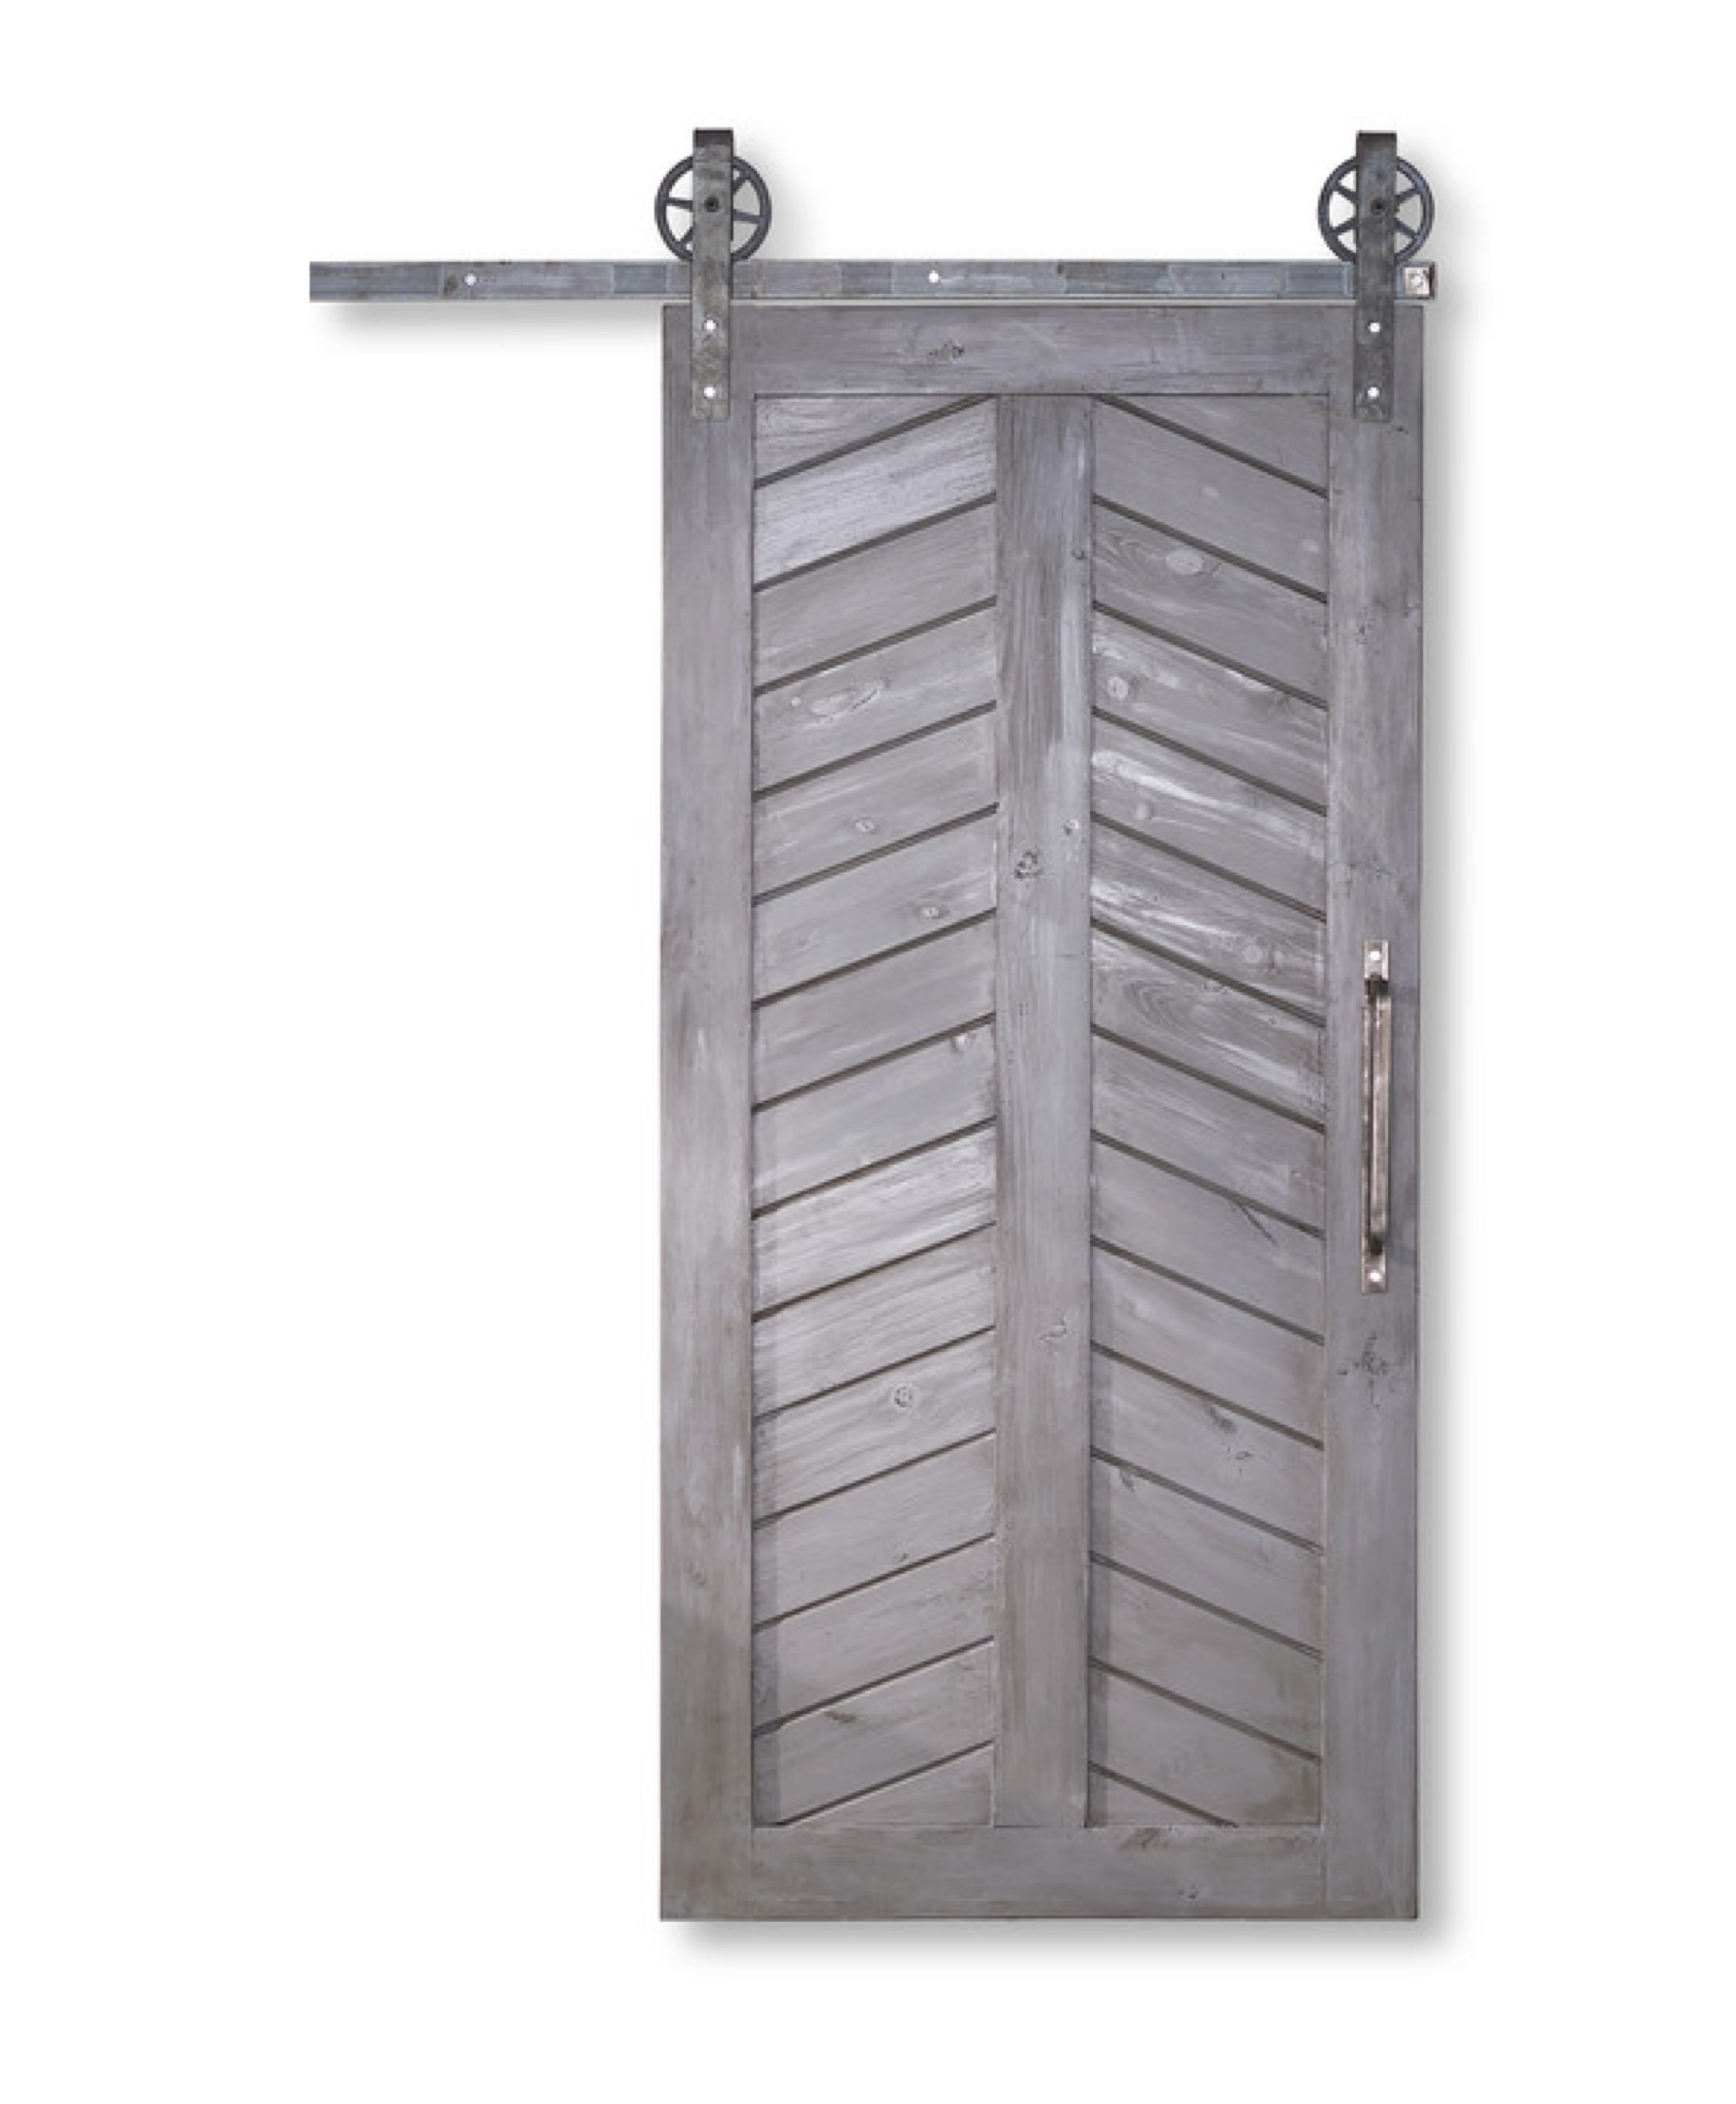 Chevron Barn Door Houzz Barn Doors Sliding Inside Barn Doors Interior Barn Doors